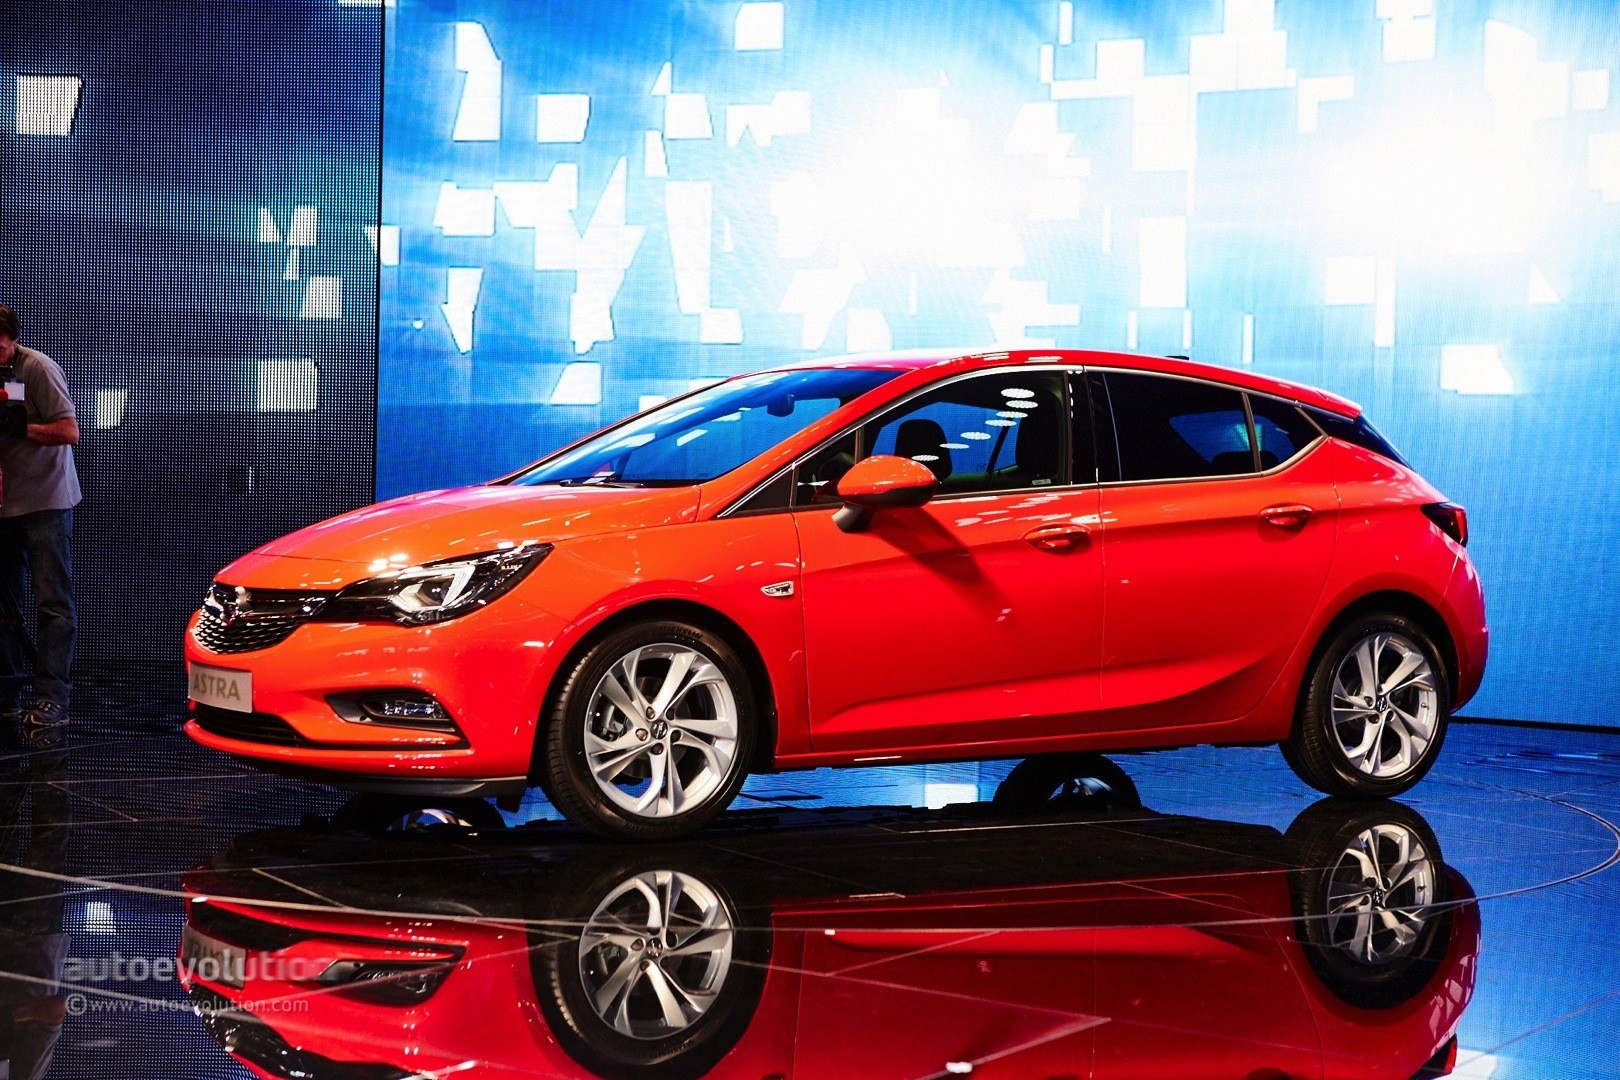 Gm Ceo Mary Bara Shows Opel Astra Sports Tourer In Frankfurt K Astra Orders Live Photos furthermore Xit Mvr Hv Zhkj Nqs as well X Lg also Update Notice likewise Rx Vision H. on tesla roadster